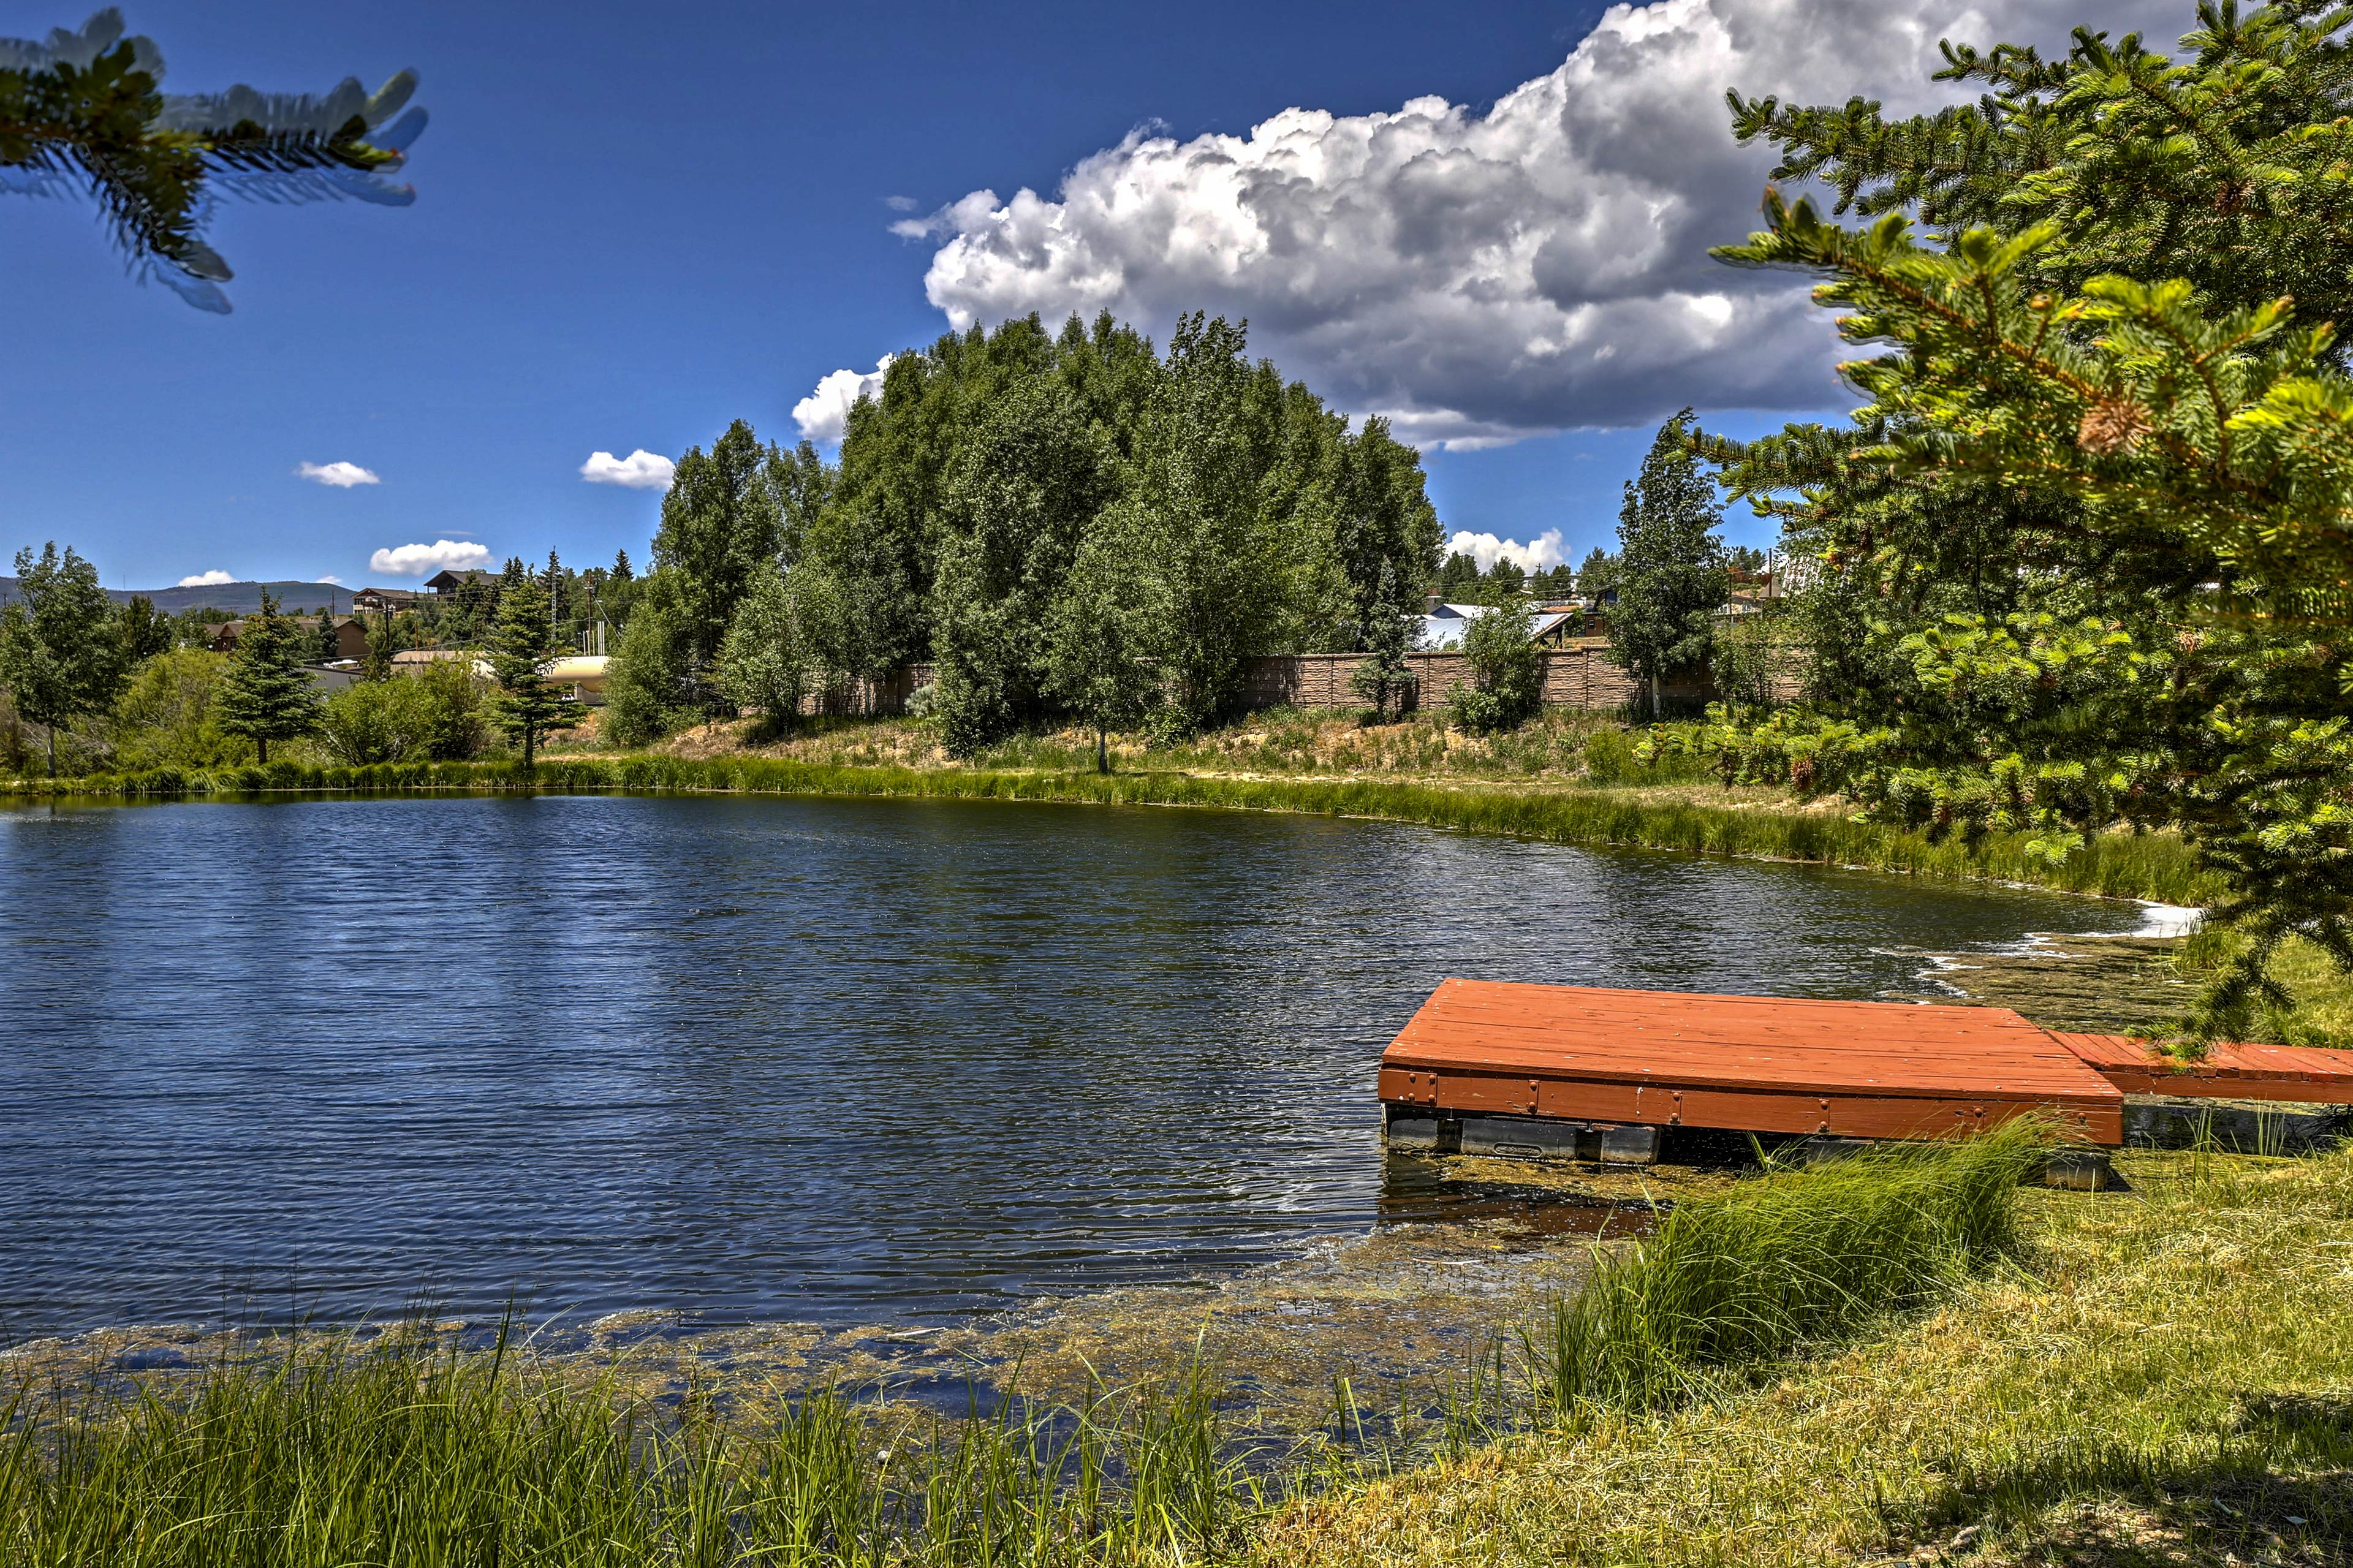 Soak up the Colorado sunshine from this vacation rental getaway!